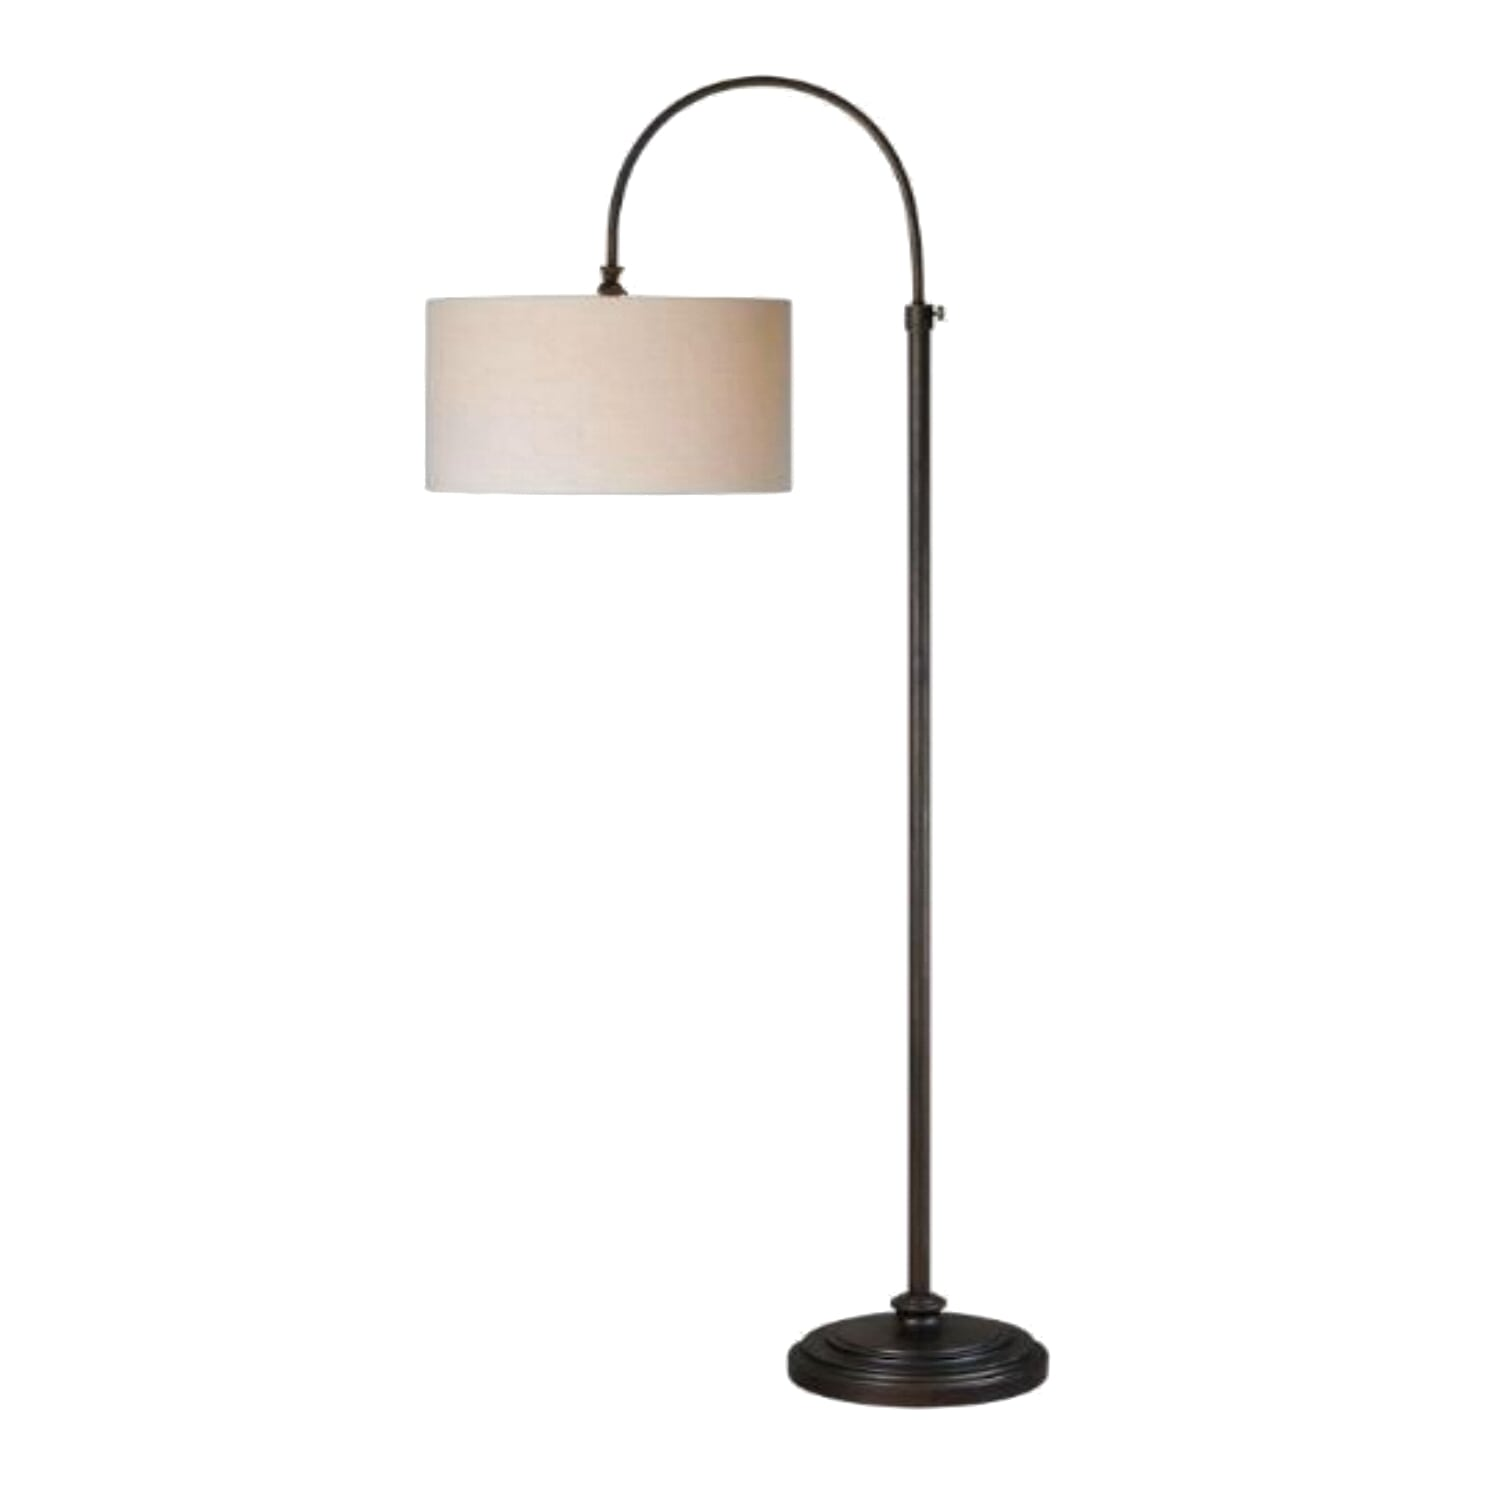 comfortable chrome light your lamp base metro and arching stand floor arc floors bronze pretty sophia home decor rubbed lighting extraordinary small round shaded for ikea lamps oil